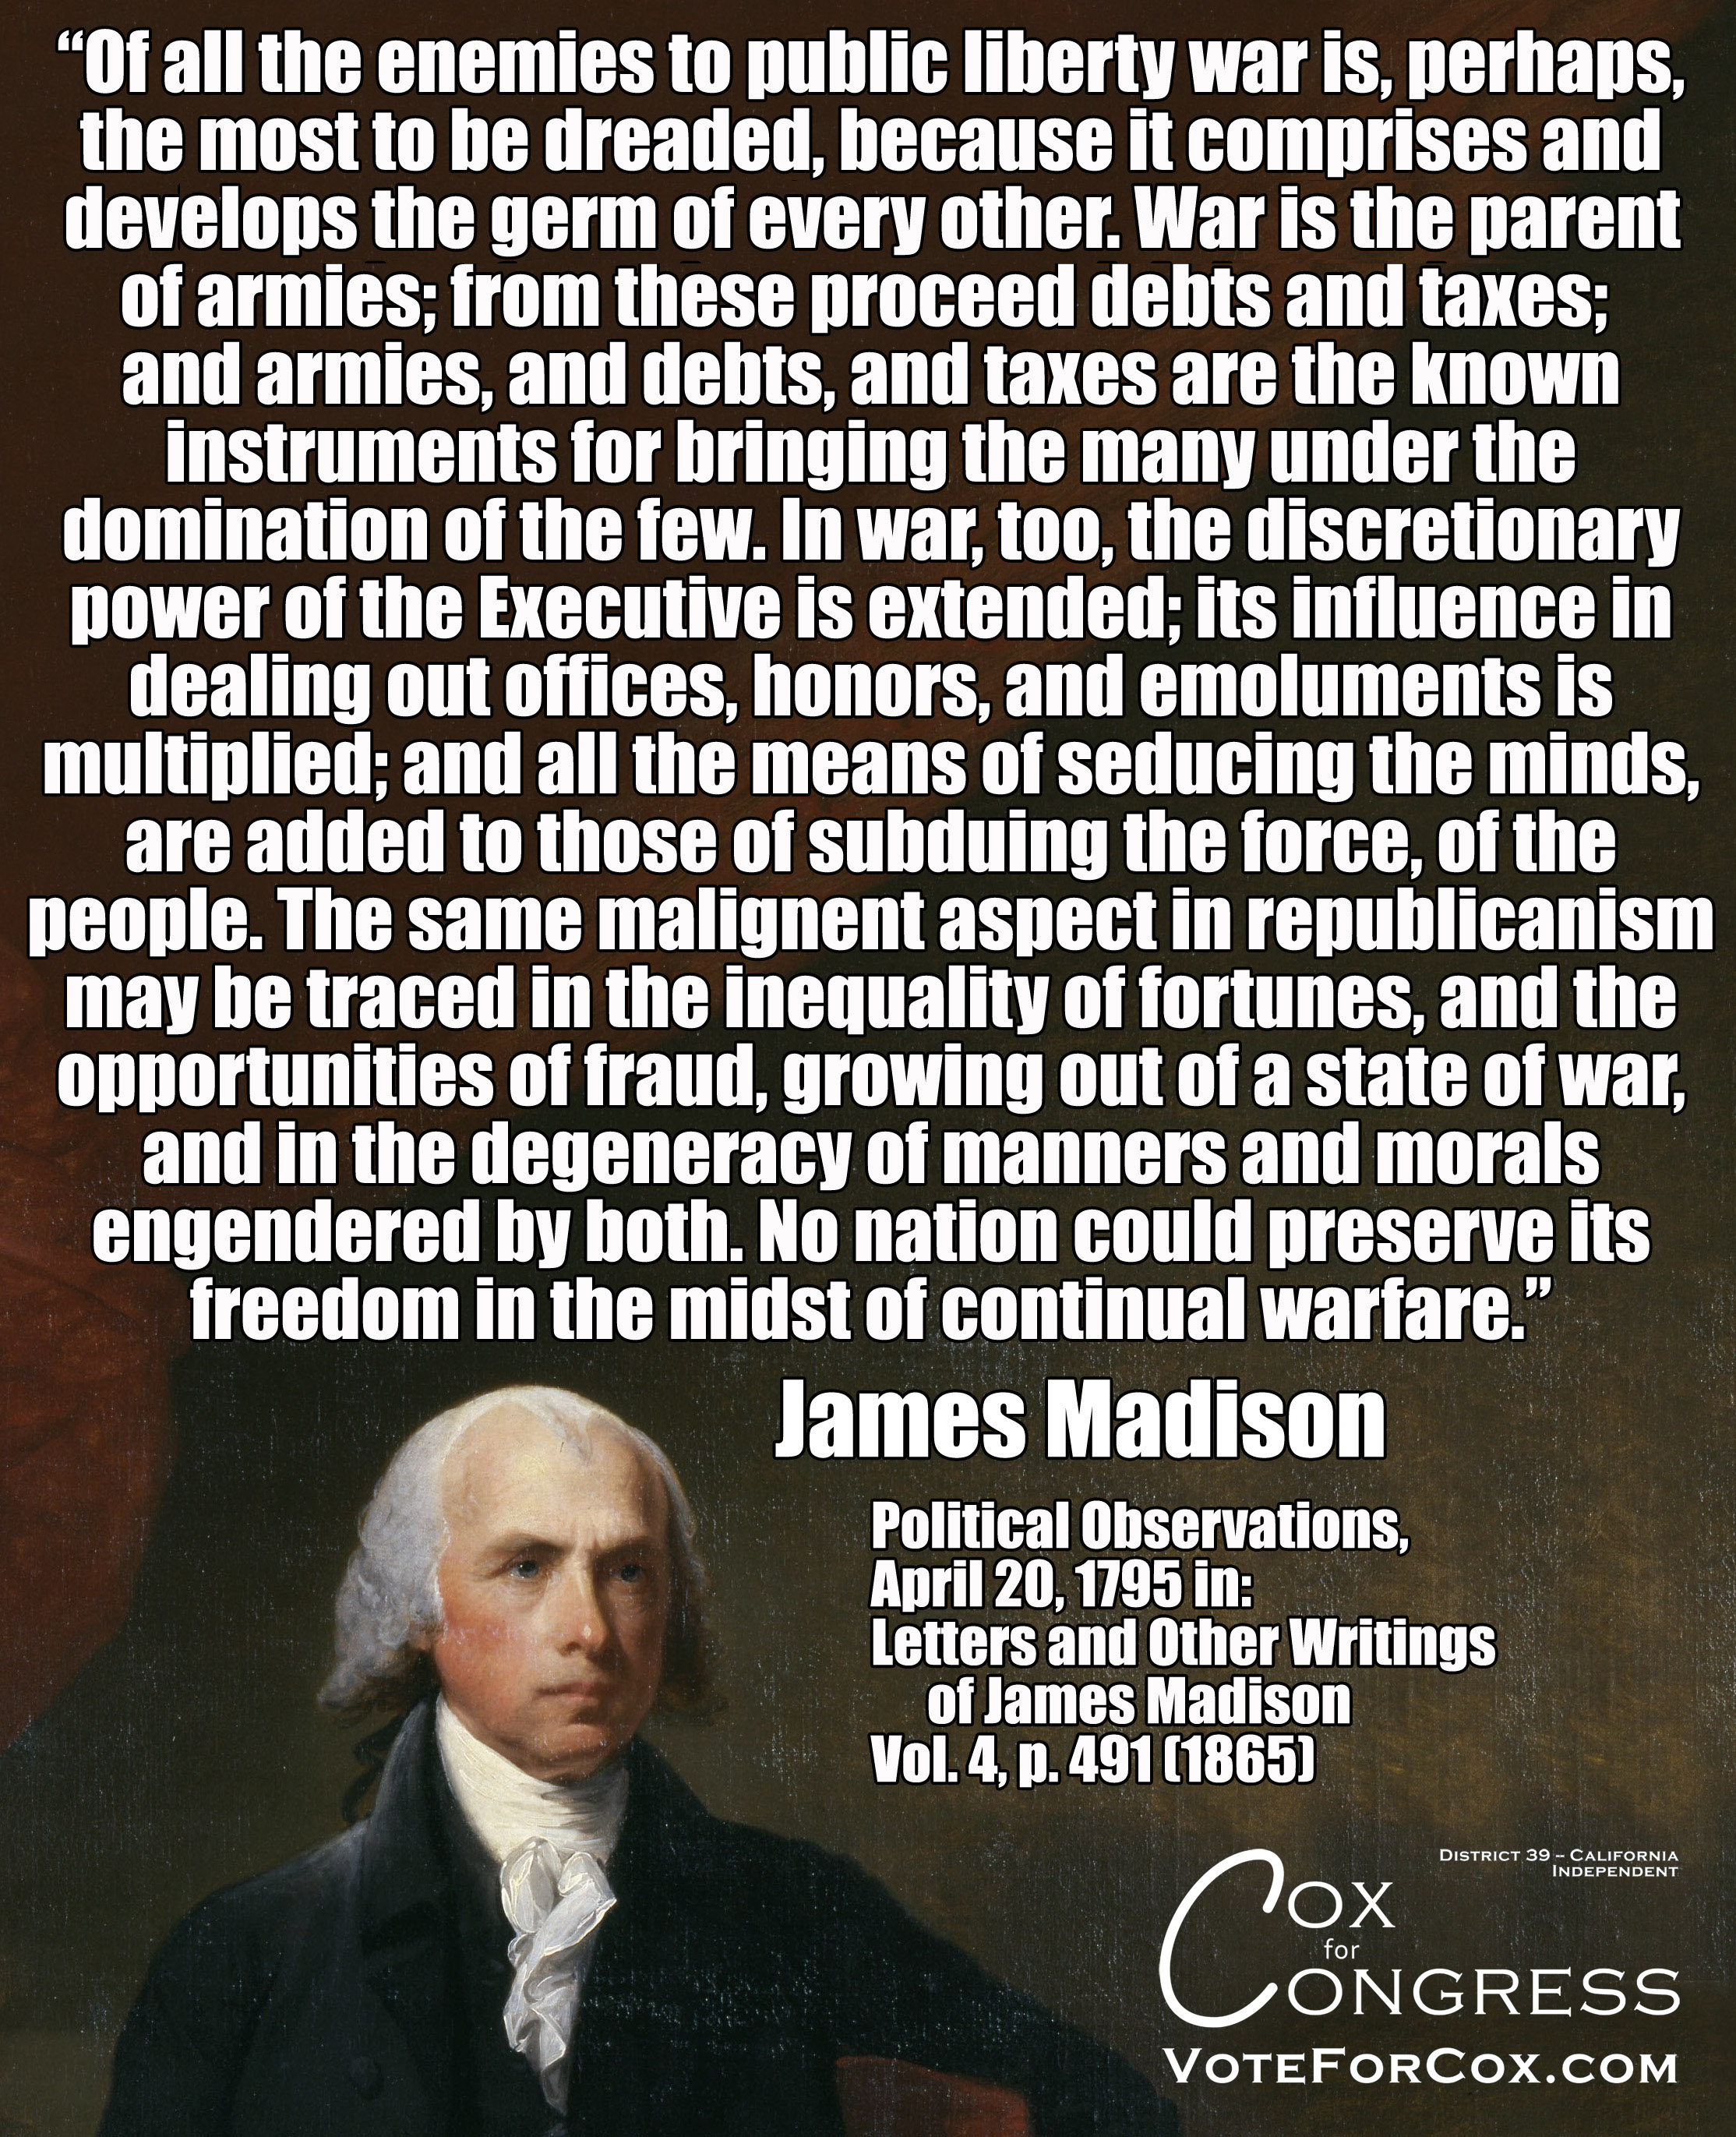 James Madison on what happens to our liberty during times of constant warfare, including how it makes wealth inequality worse.